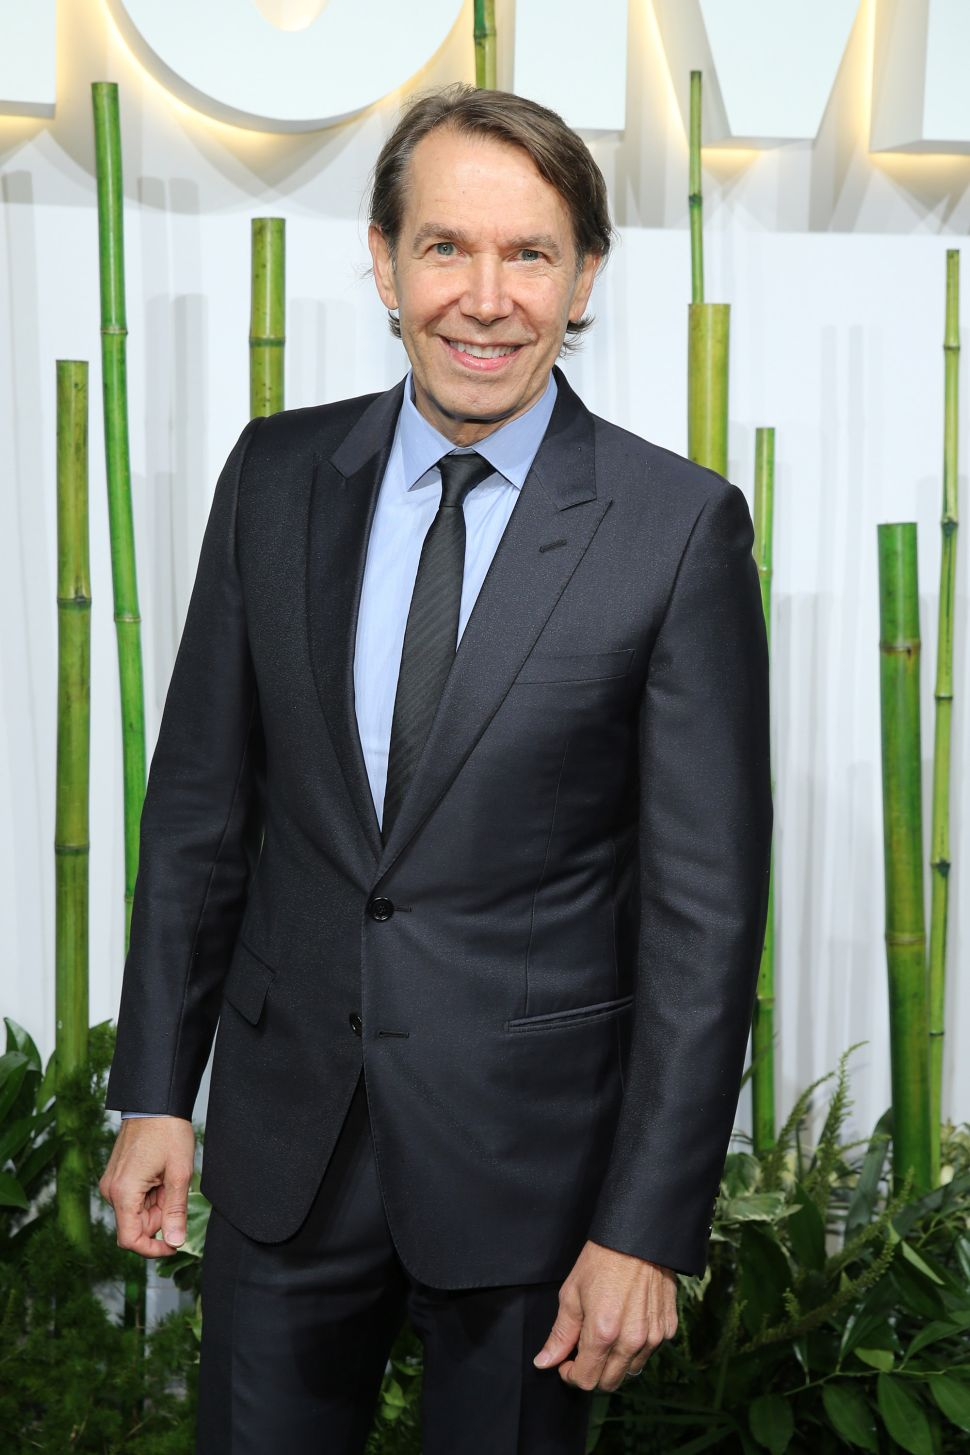 Jeff Koons Sued Again, UK Searches for Lost Public Art, and More